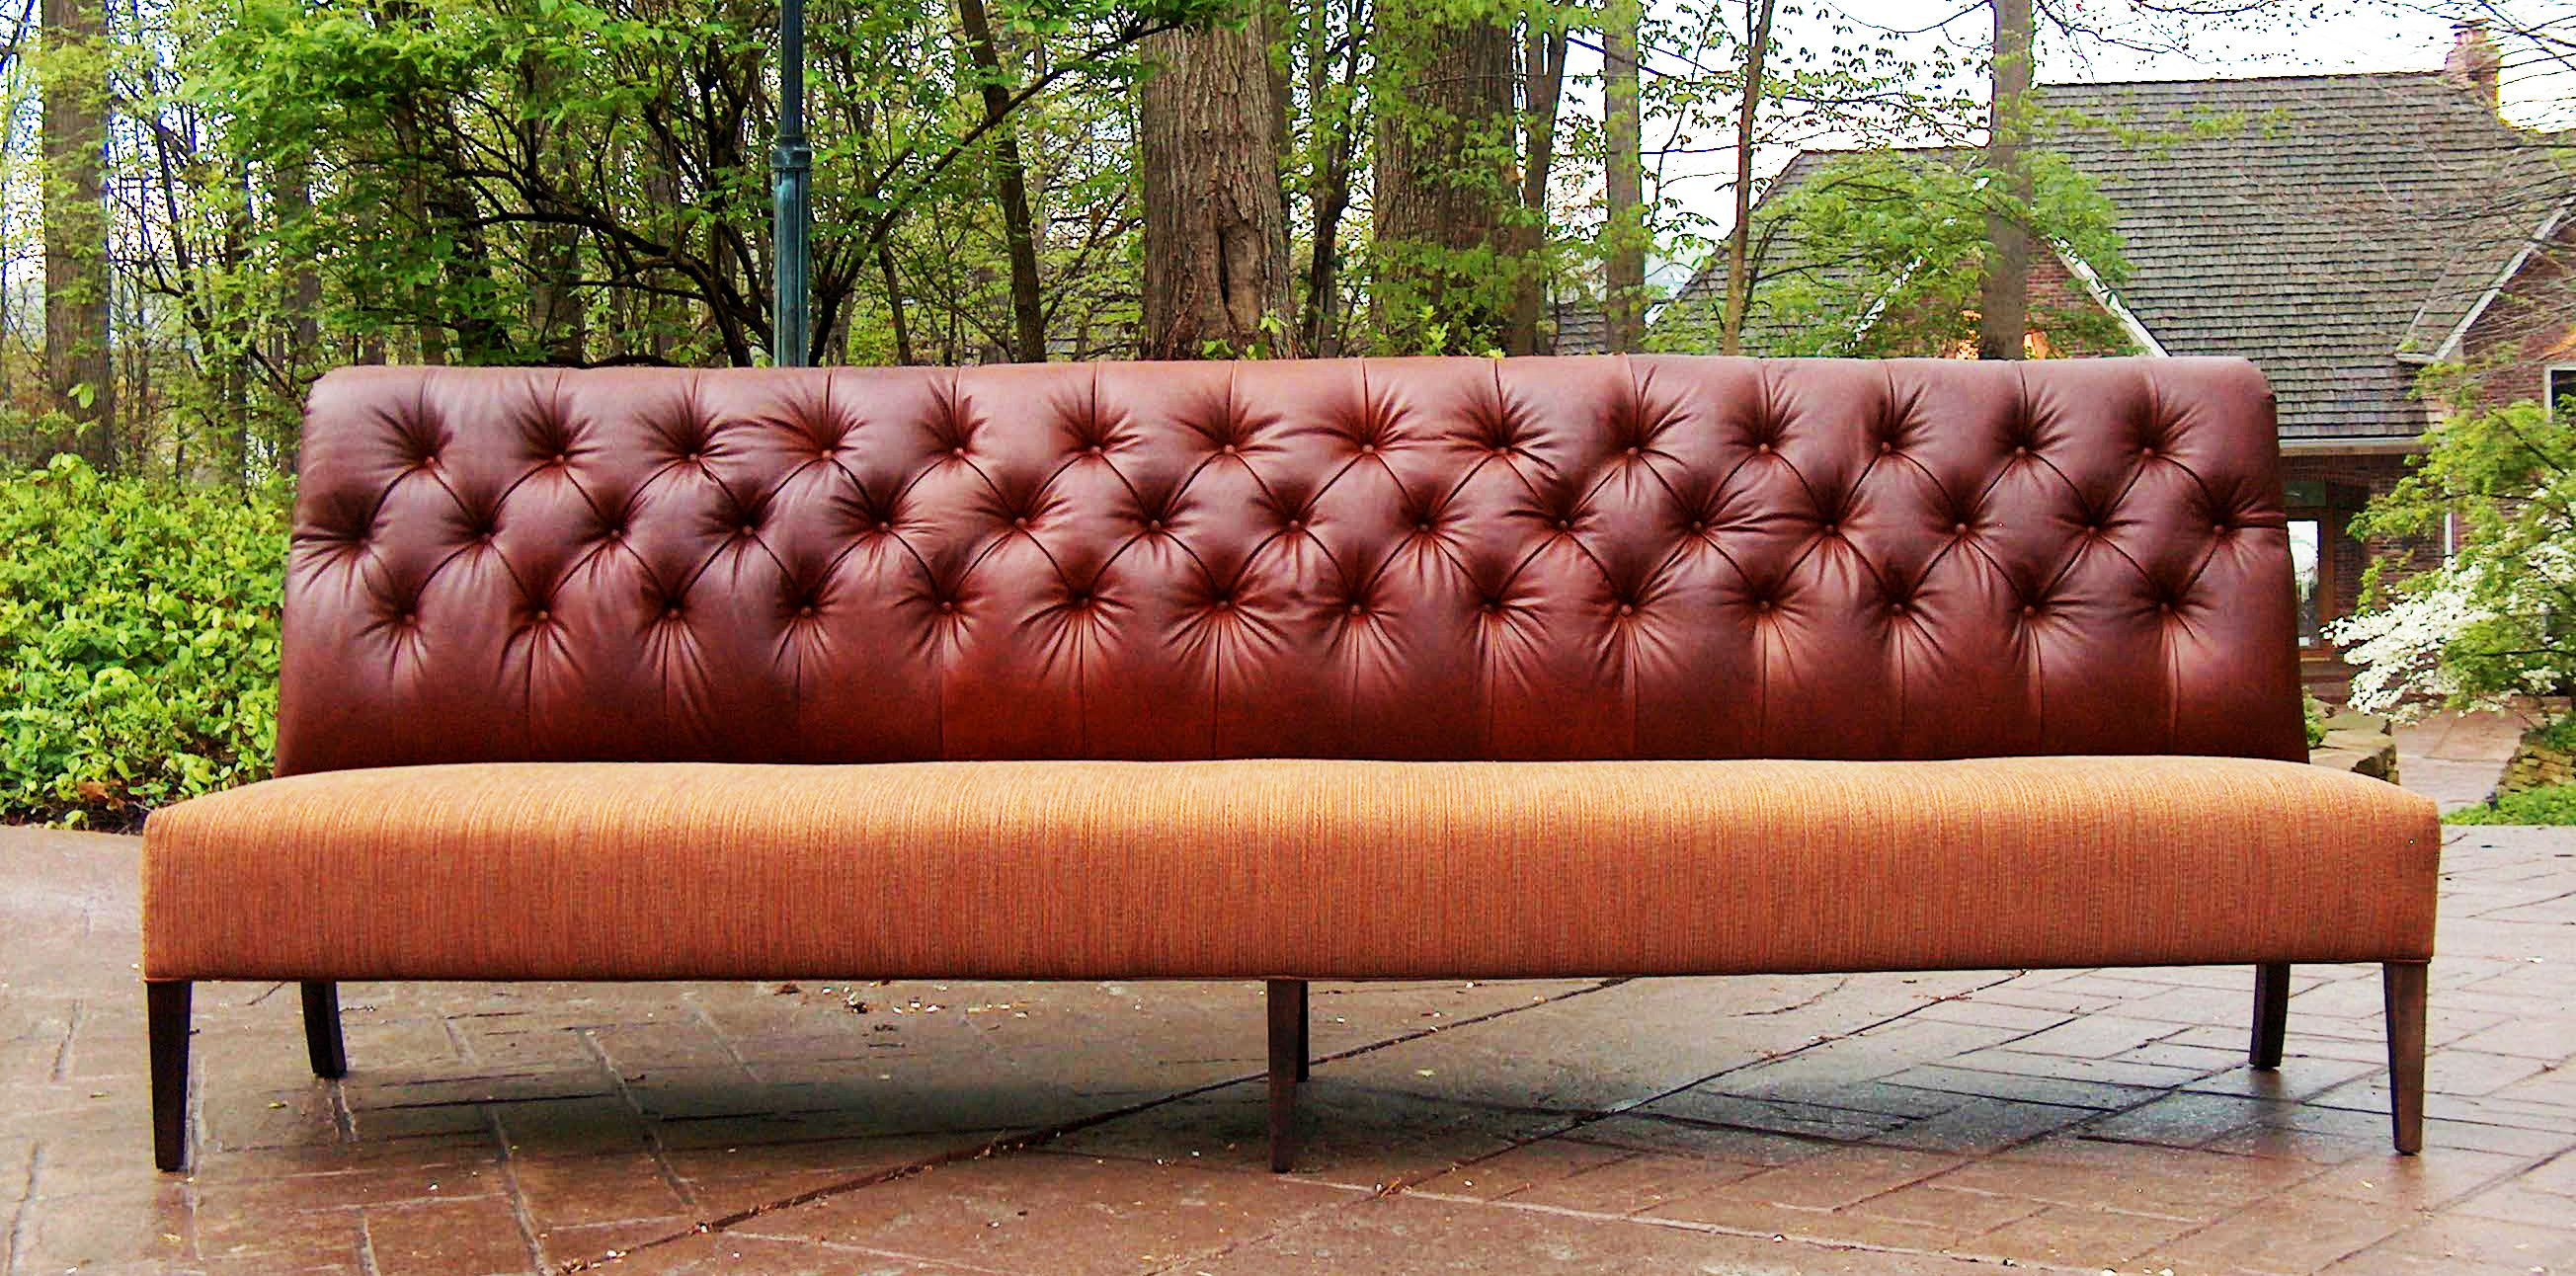 Leather Settees Or Banquettes Triple Tufted Pull Up Leather Back Banquette Tls By Design